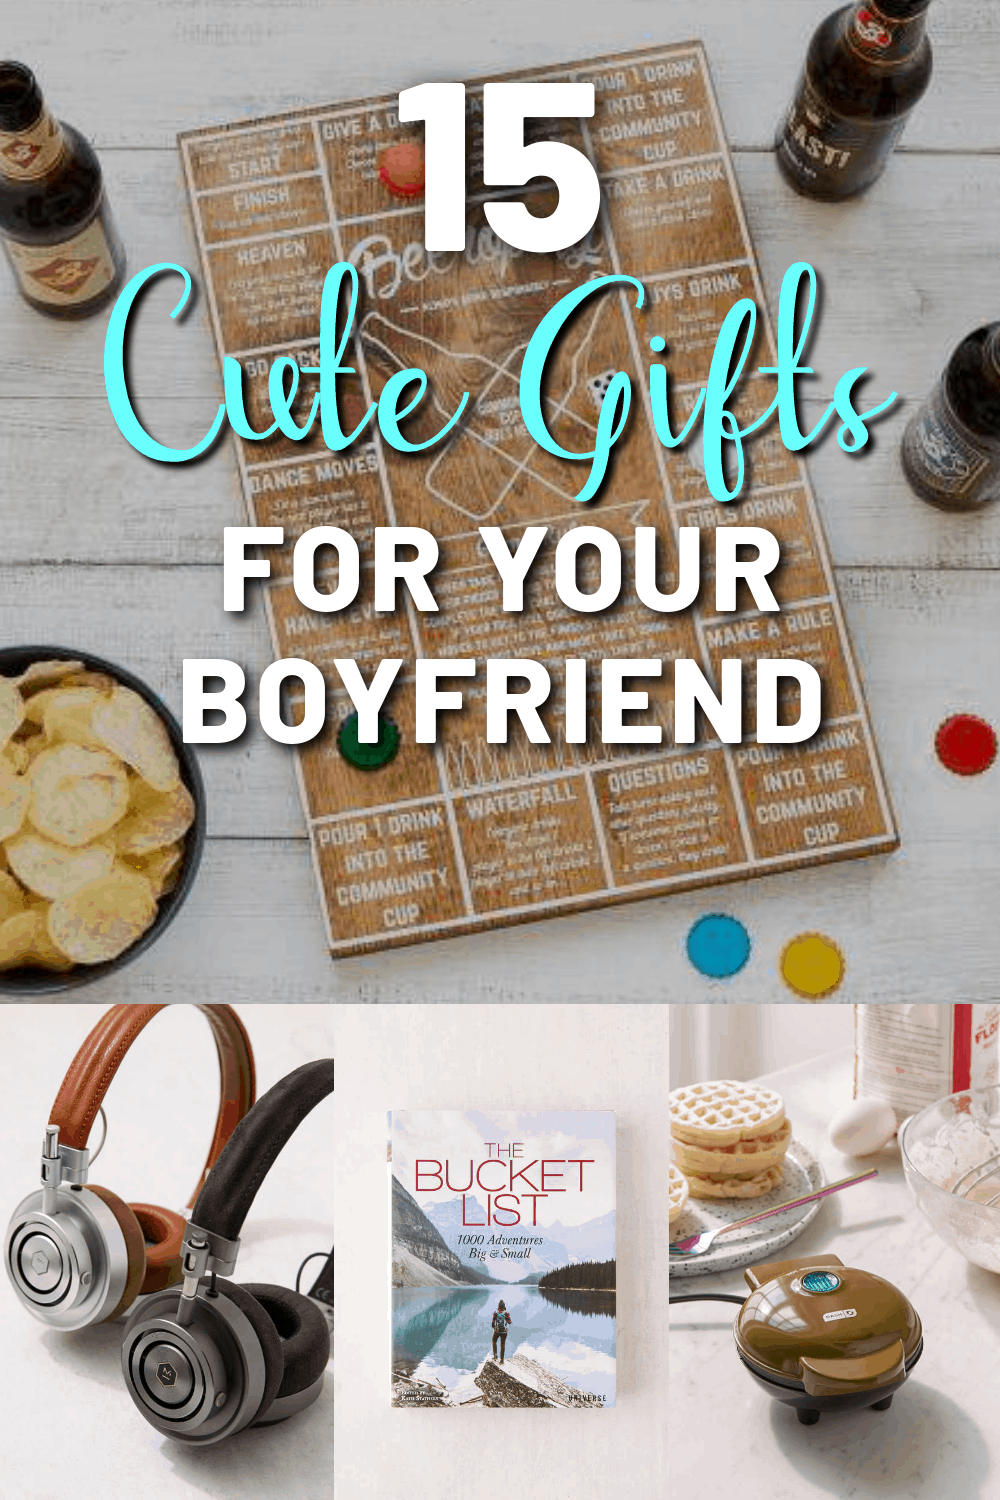 Cute Christmas Ideas For Your Boyfriend.15 Cute Christmas Gift Ideas For Your Boyfriend Society19